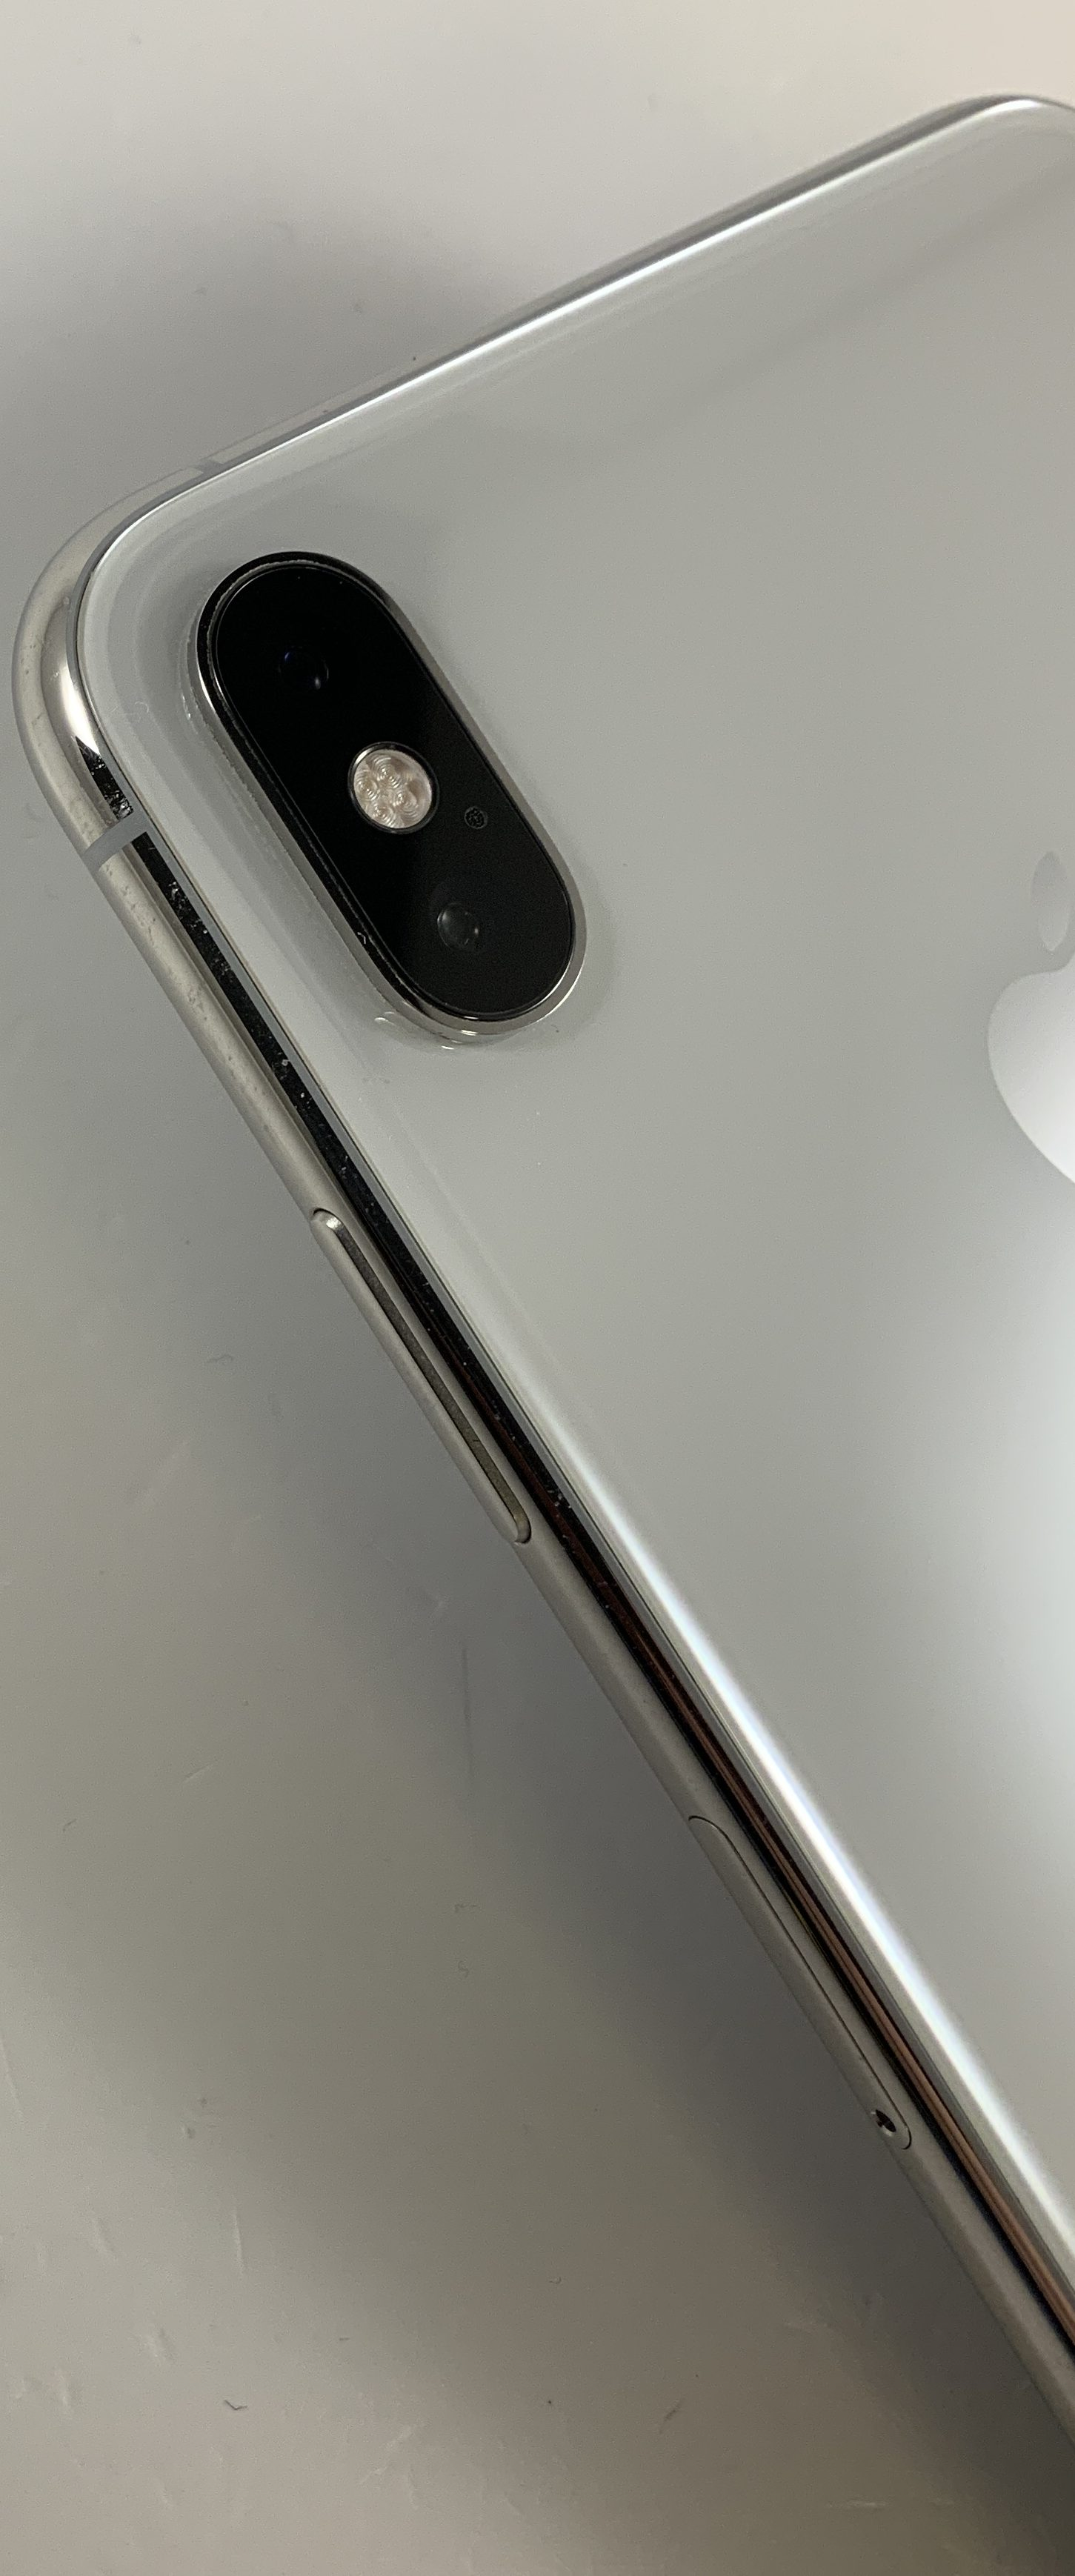 iPhone XS Max 256GB, 256GB, Silver, obraz 4